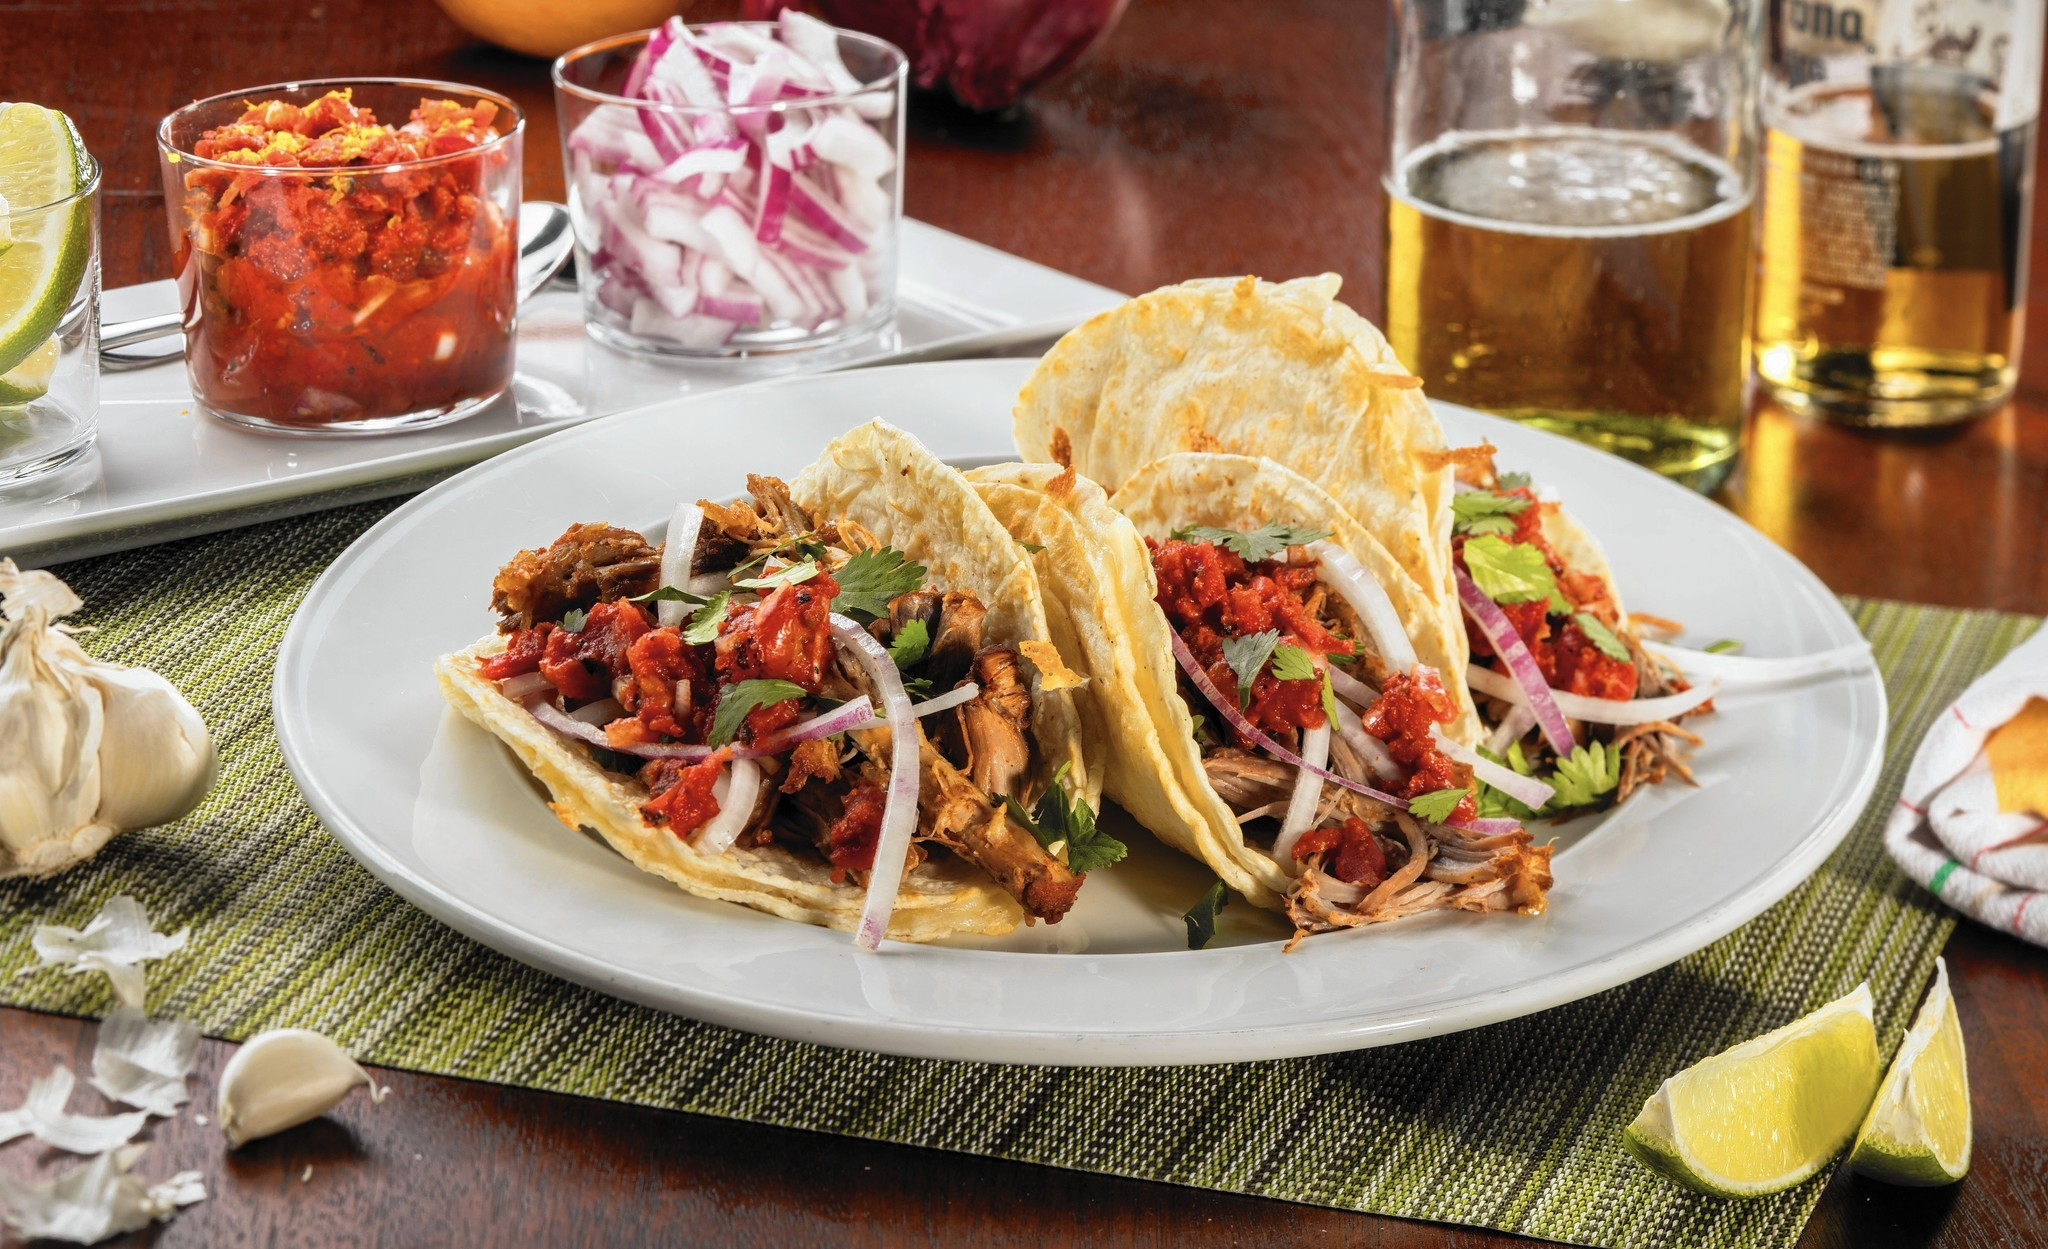 Tacos for a crowd? You'll want this red chile-braised pork shoulder